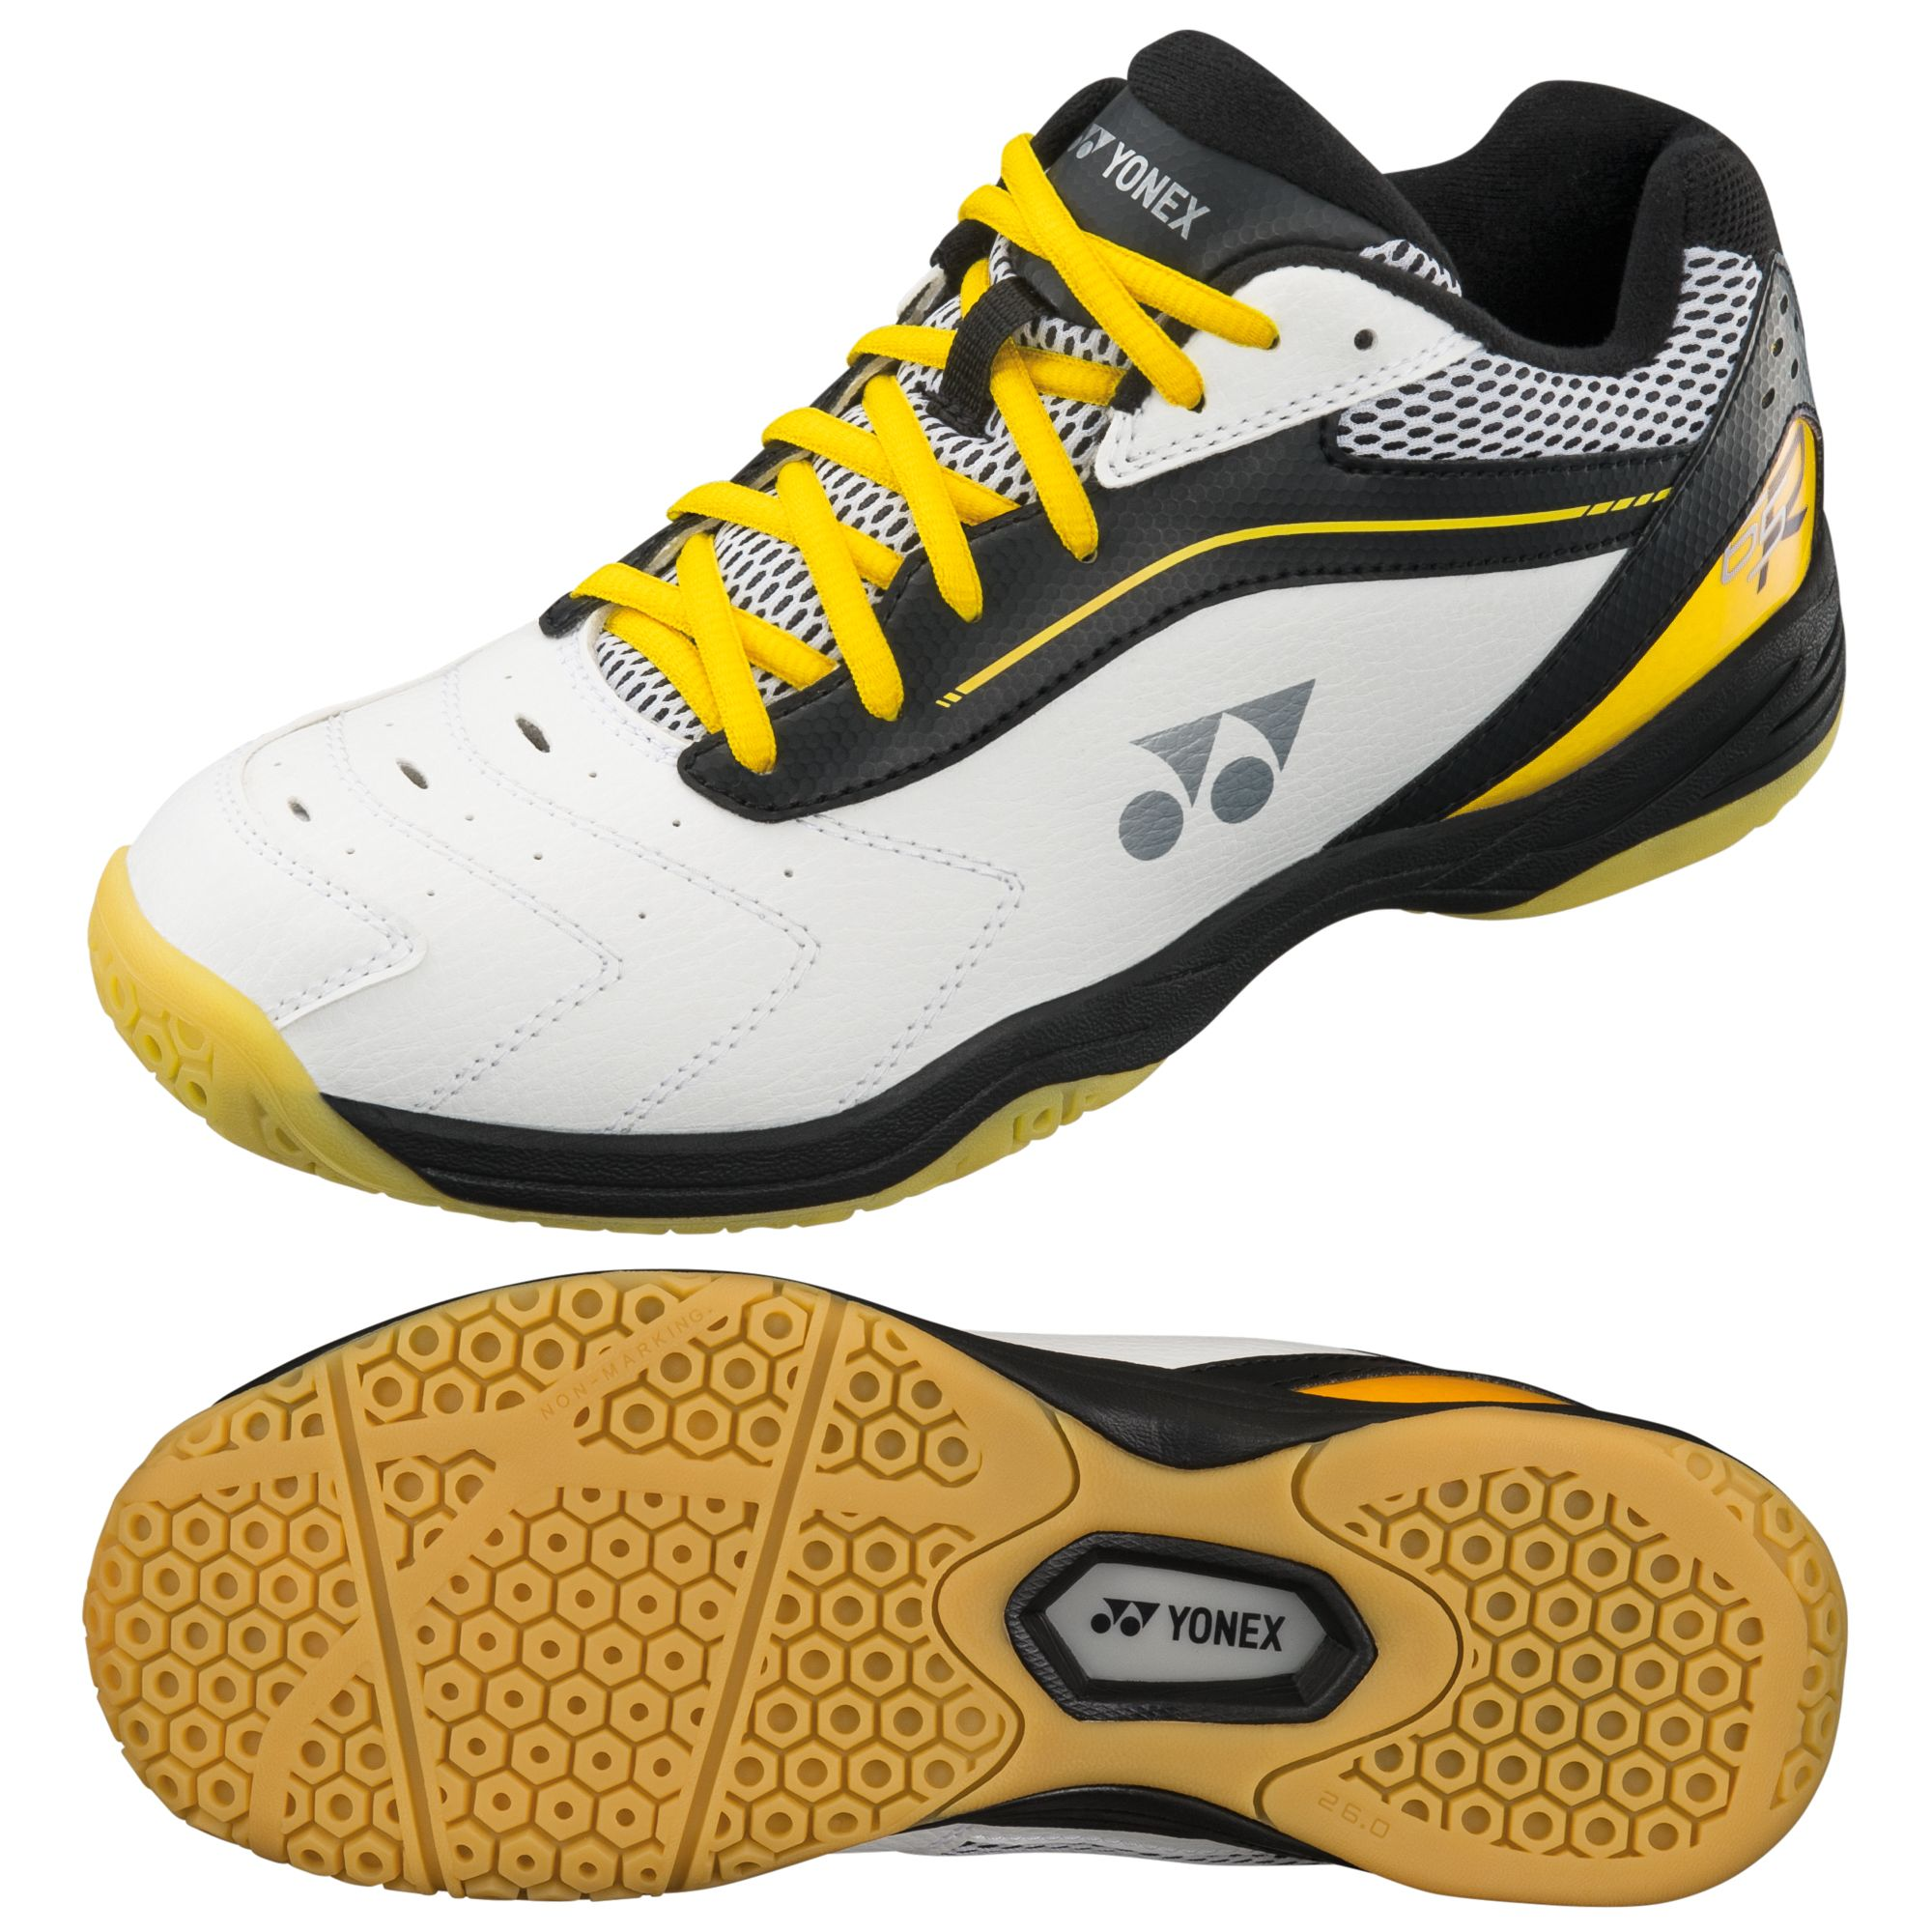 Shoes For Badminton And Running